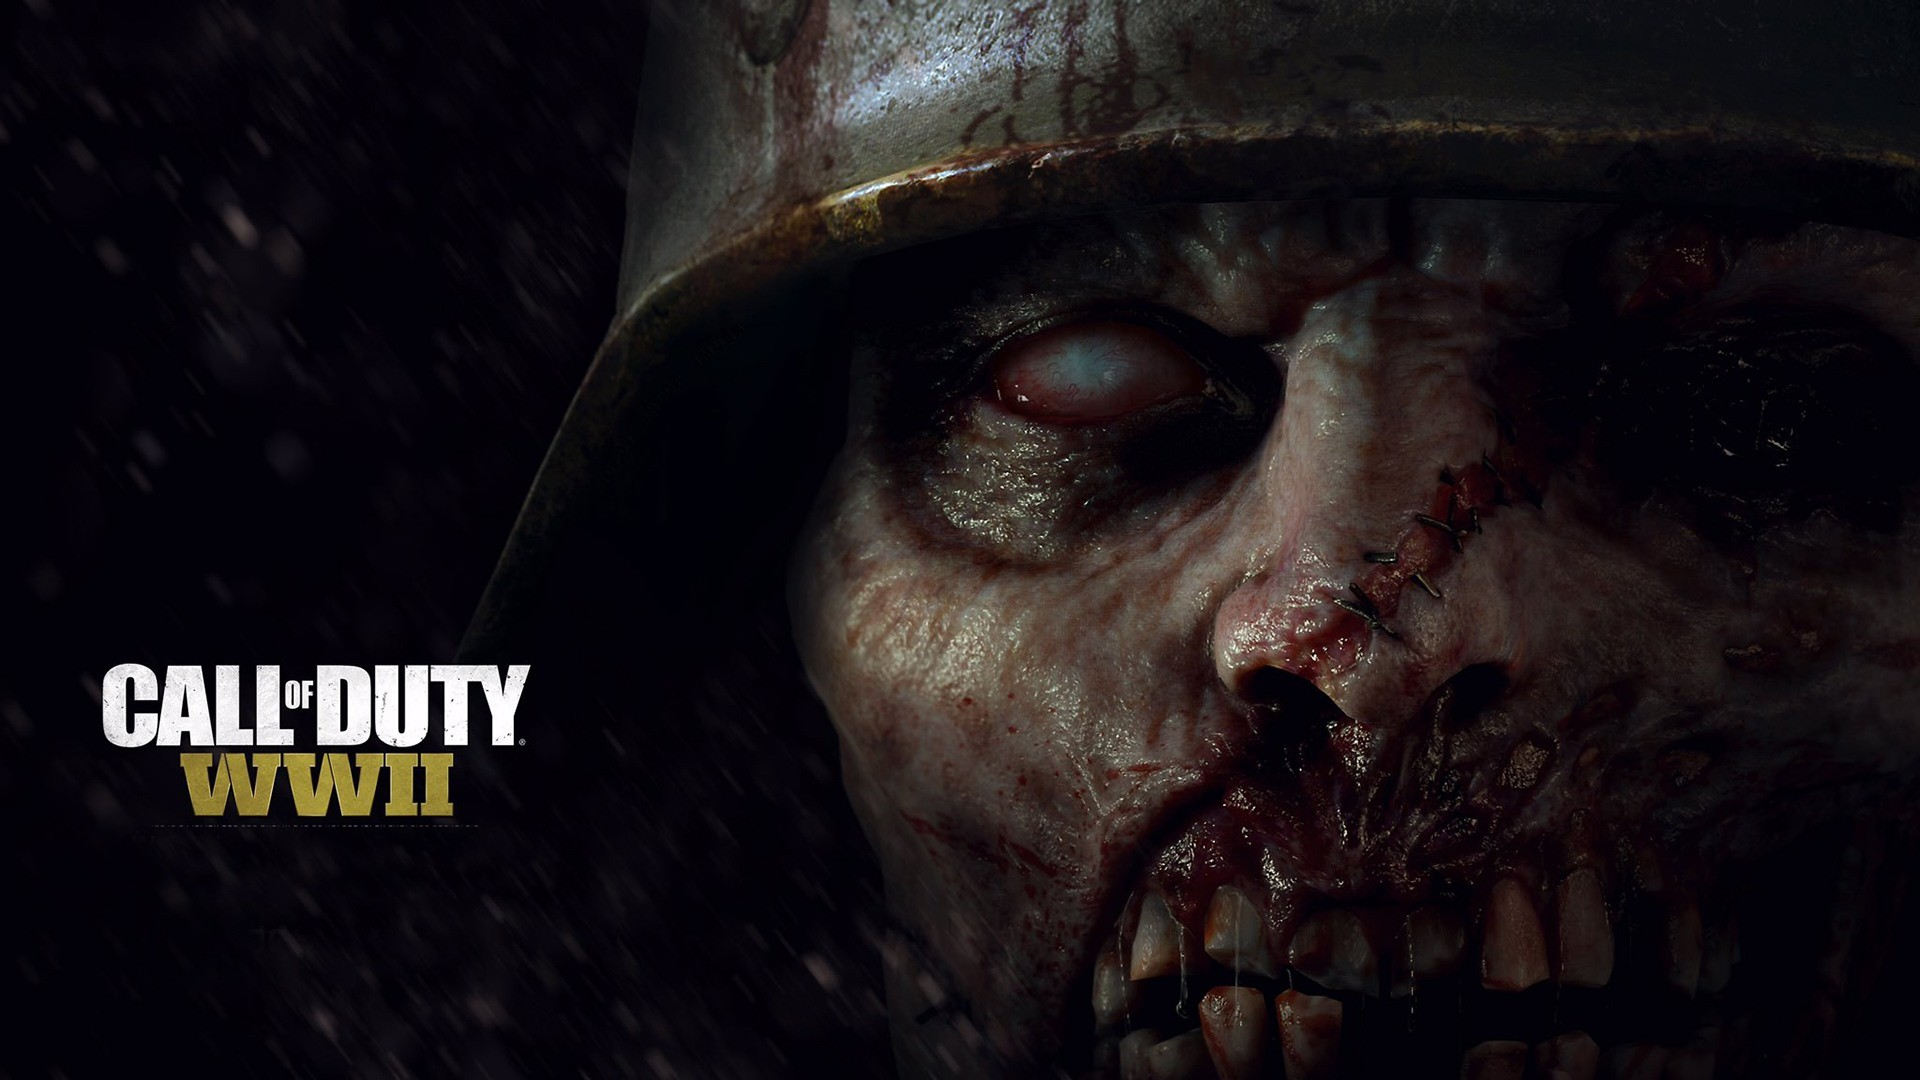 1920x1080 Cool-Call-of-Duty-WWII-Zombie-Soldier-Check-